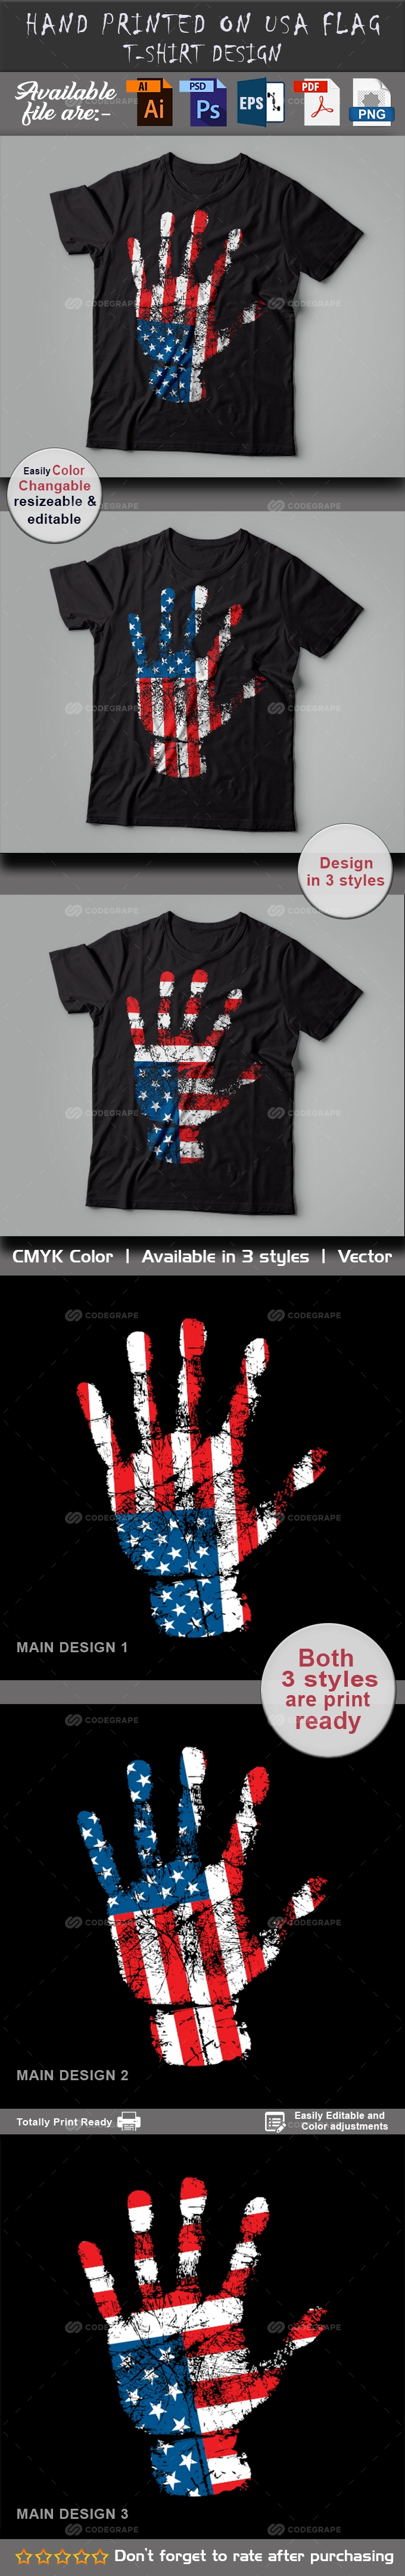 Hand Printed on USA Flag T-Shirt design